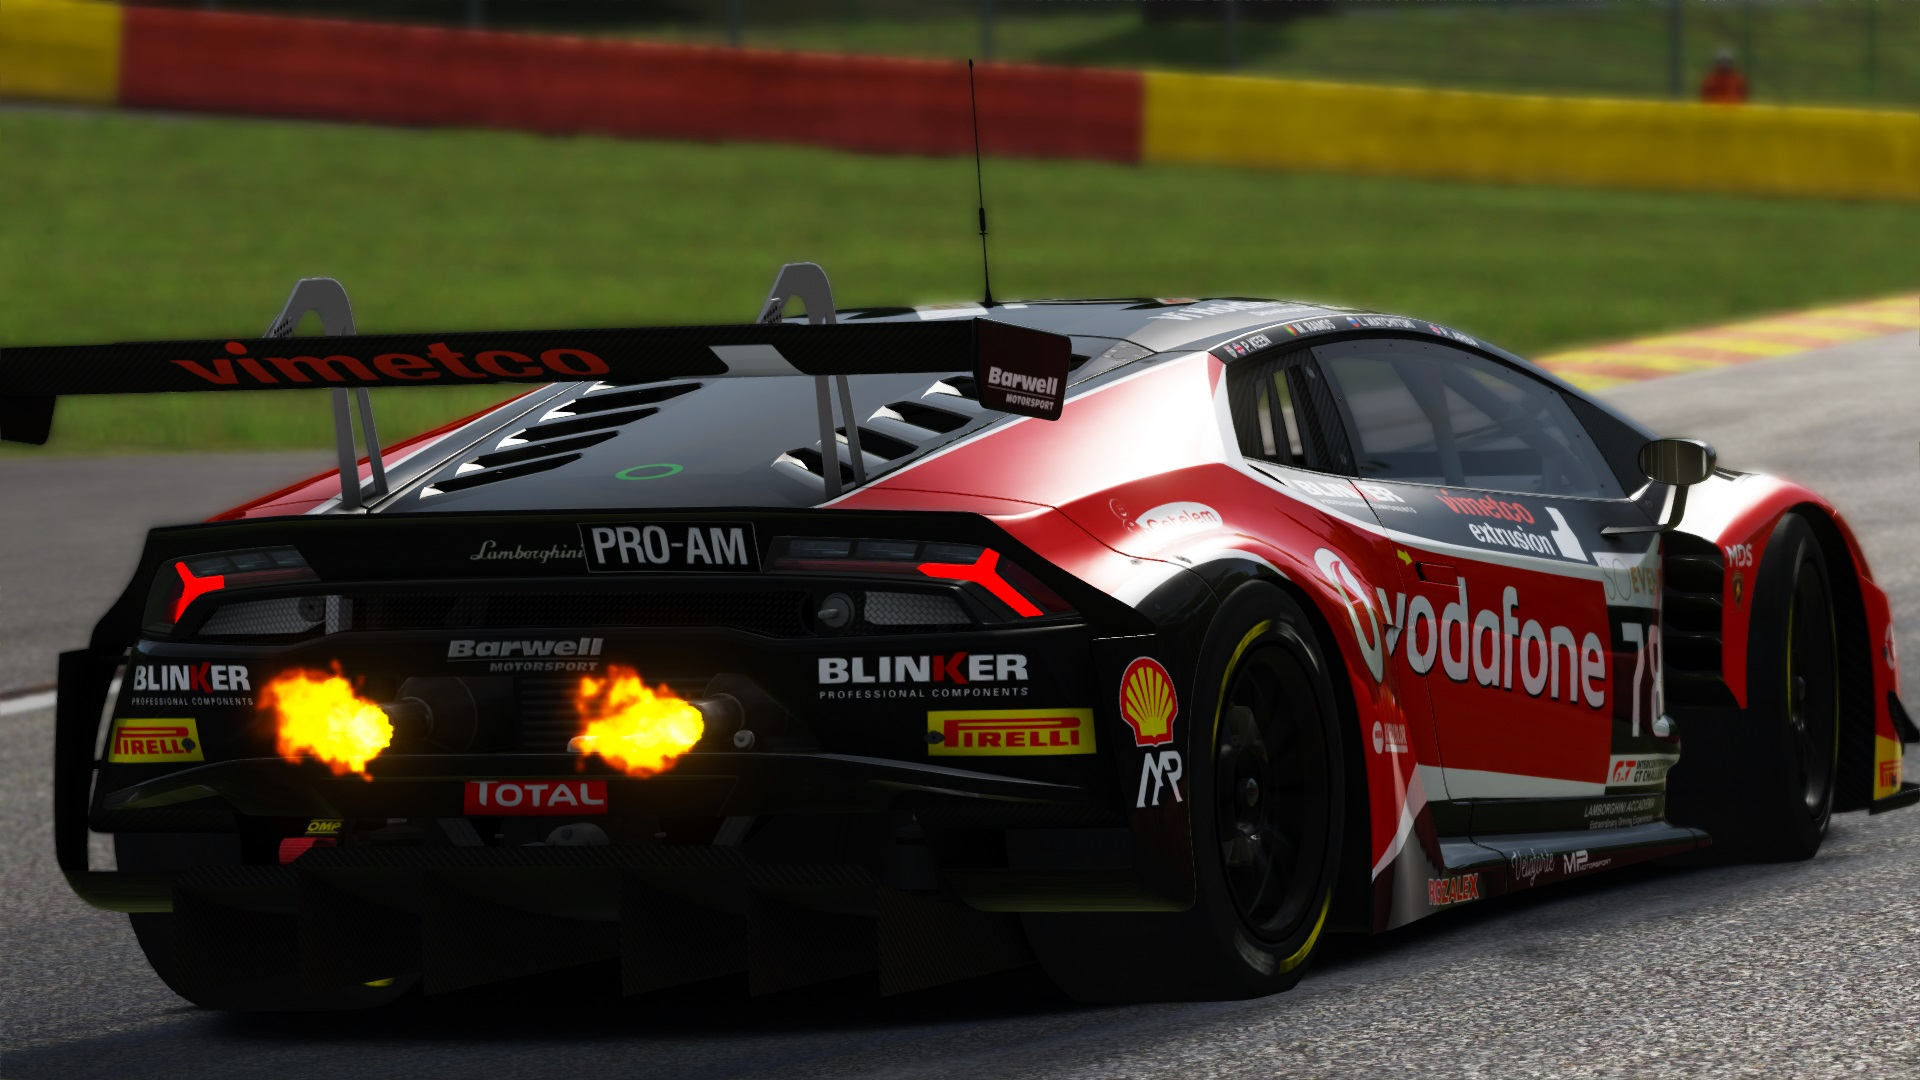 Screenshot_ks_lamborghini_huracan_gt3_spa_7-8-117-15-15-38.jpg